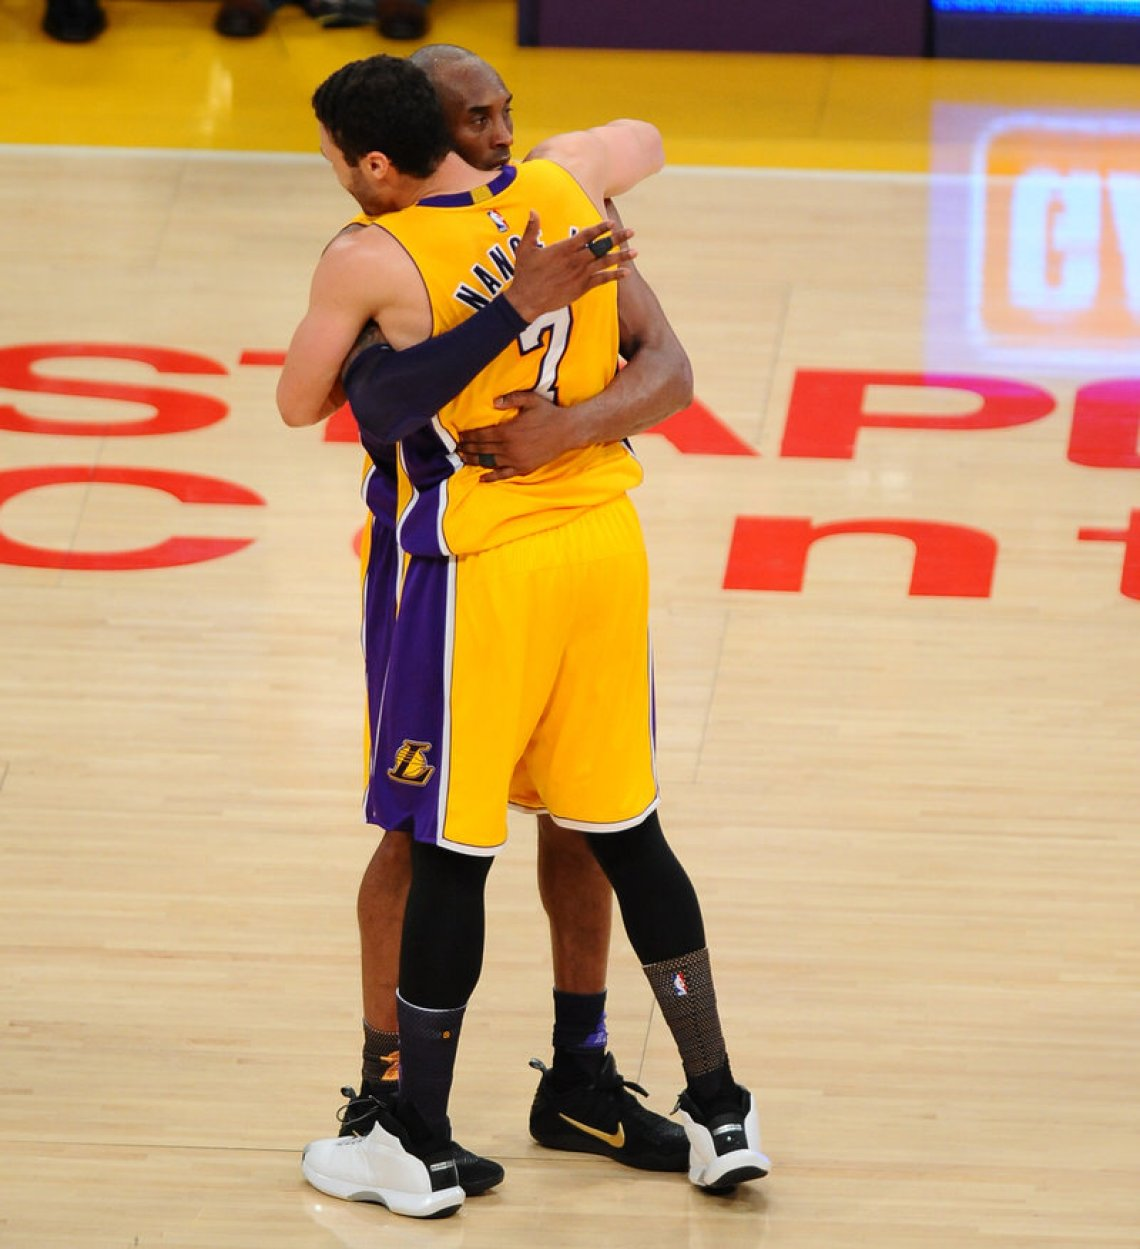 LOS ANGELES, CA - APRIL 13:  Kobe Bryant #24 and Larry Nance Jr. #7 of the Los Angeles Lakers hug after the game against the Utah Jazz on April 13, 2016 at Staples Center in Los Angeles, California. NOTE TO USER: User expressly acknowledges and agrees that, by downloading and/or using this Photograph, user is consenting to the terms and conditions of the Getty Images License Agreement. Mandatory Copyright Notice: Copyright 2016 NBAE (Photo by Juan Ocampo/NBAE via Getty Images)